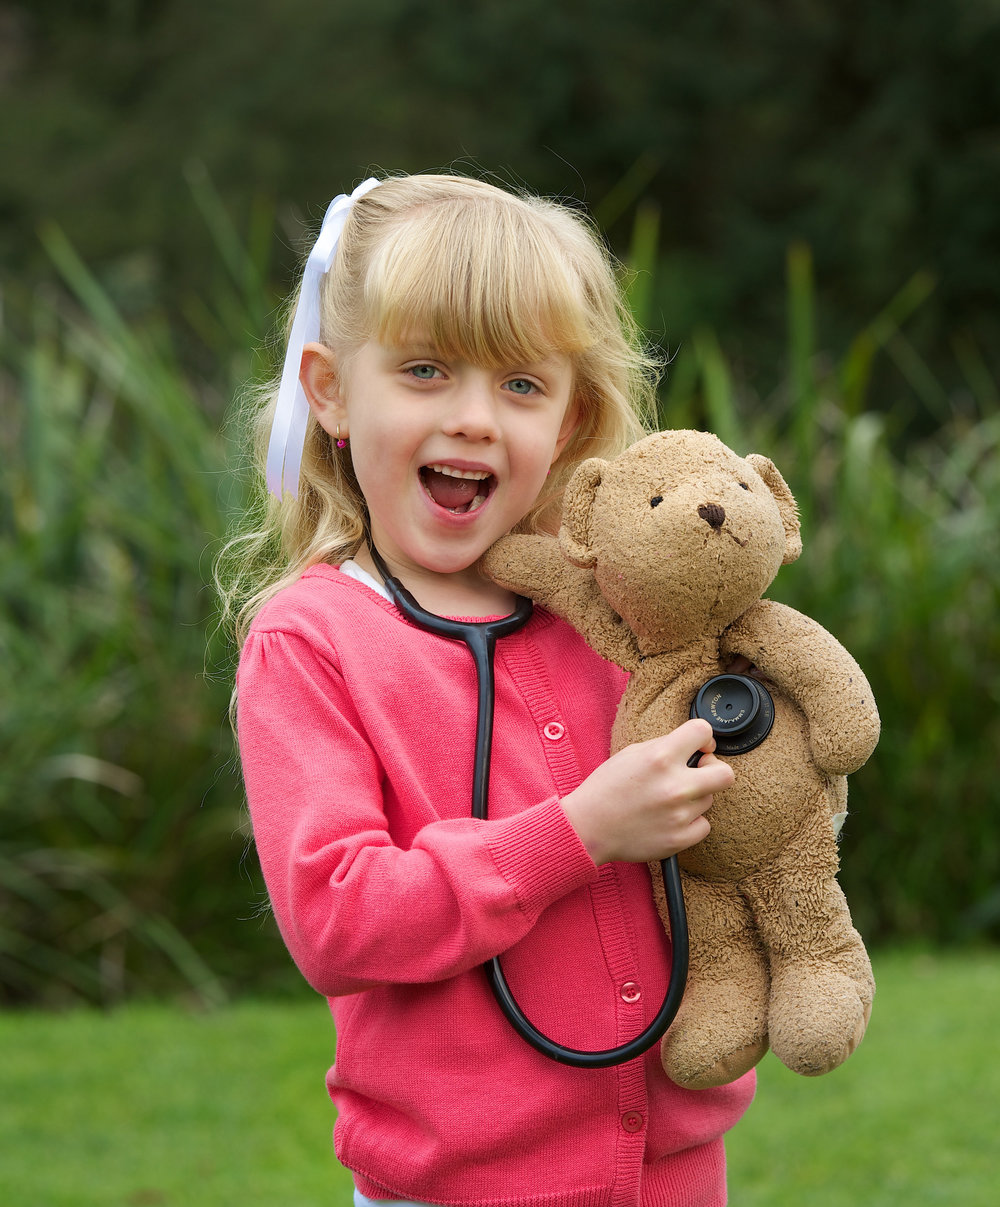 CHP_Export_92078535_Lily Inglis 6 visited Healesville Sanctuary with Milo her teddy who received.jpg